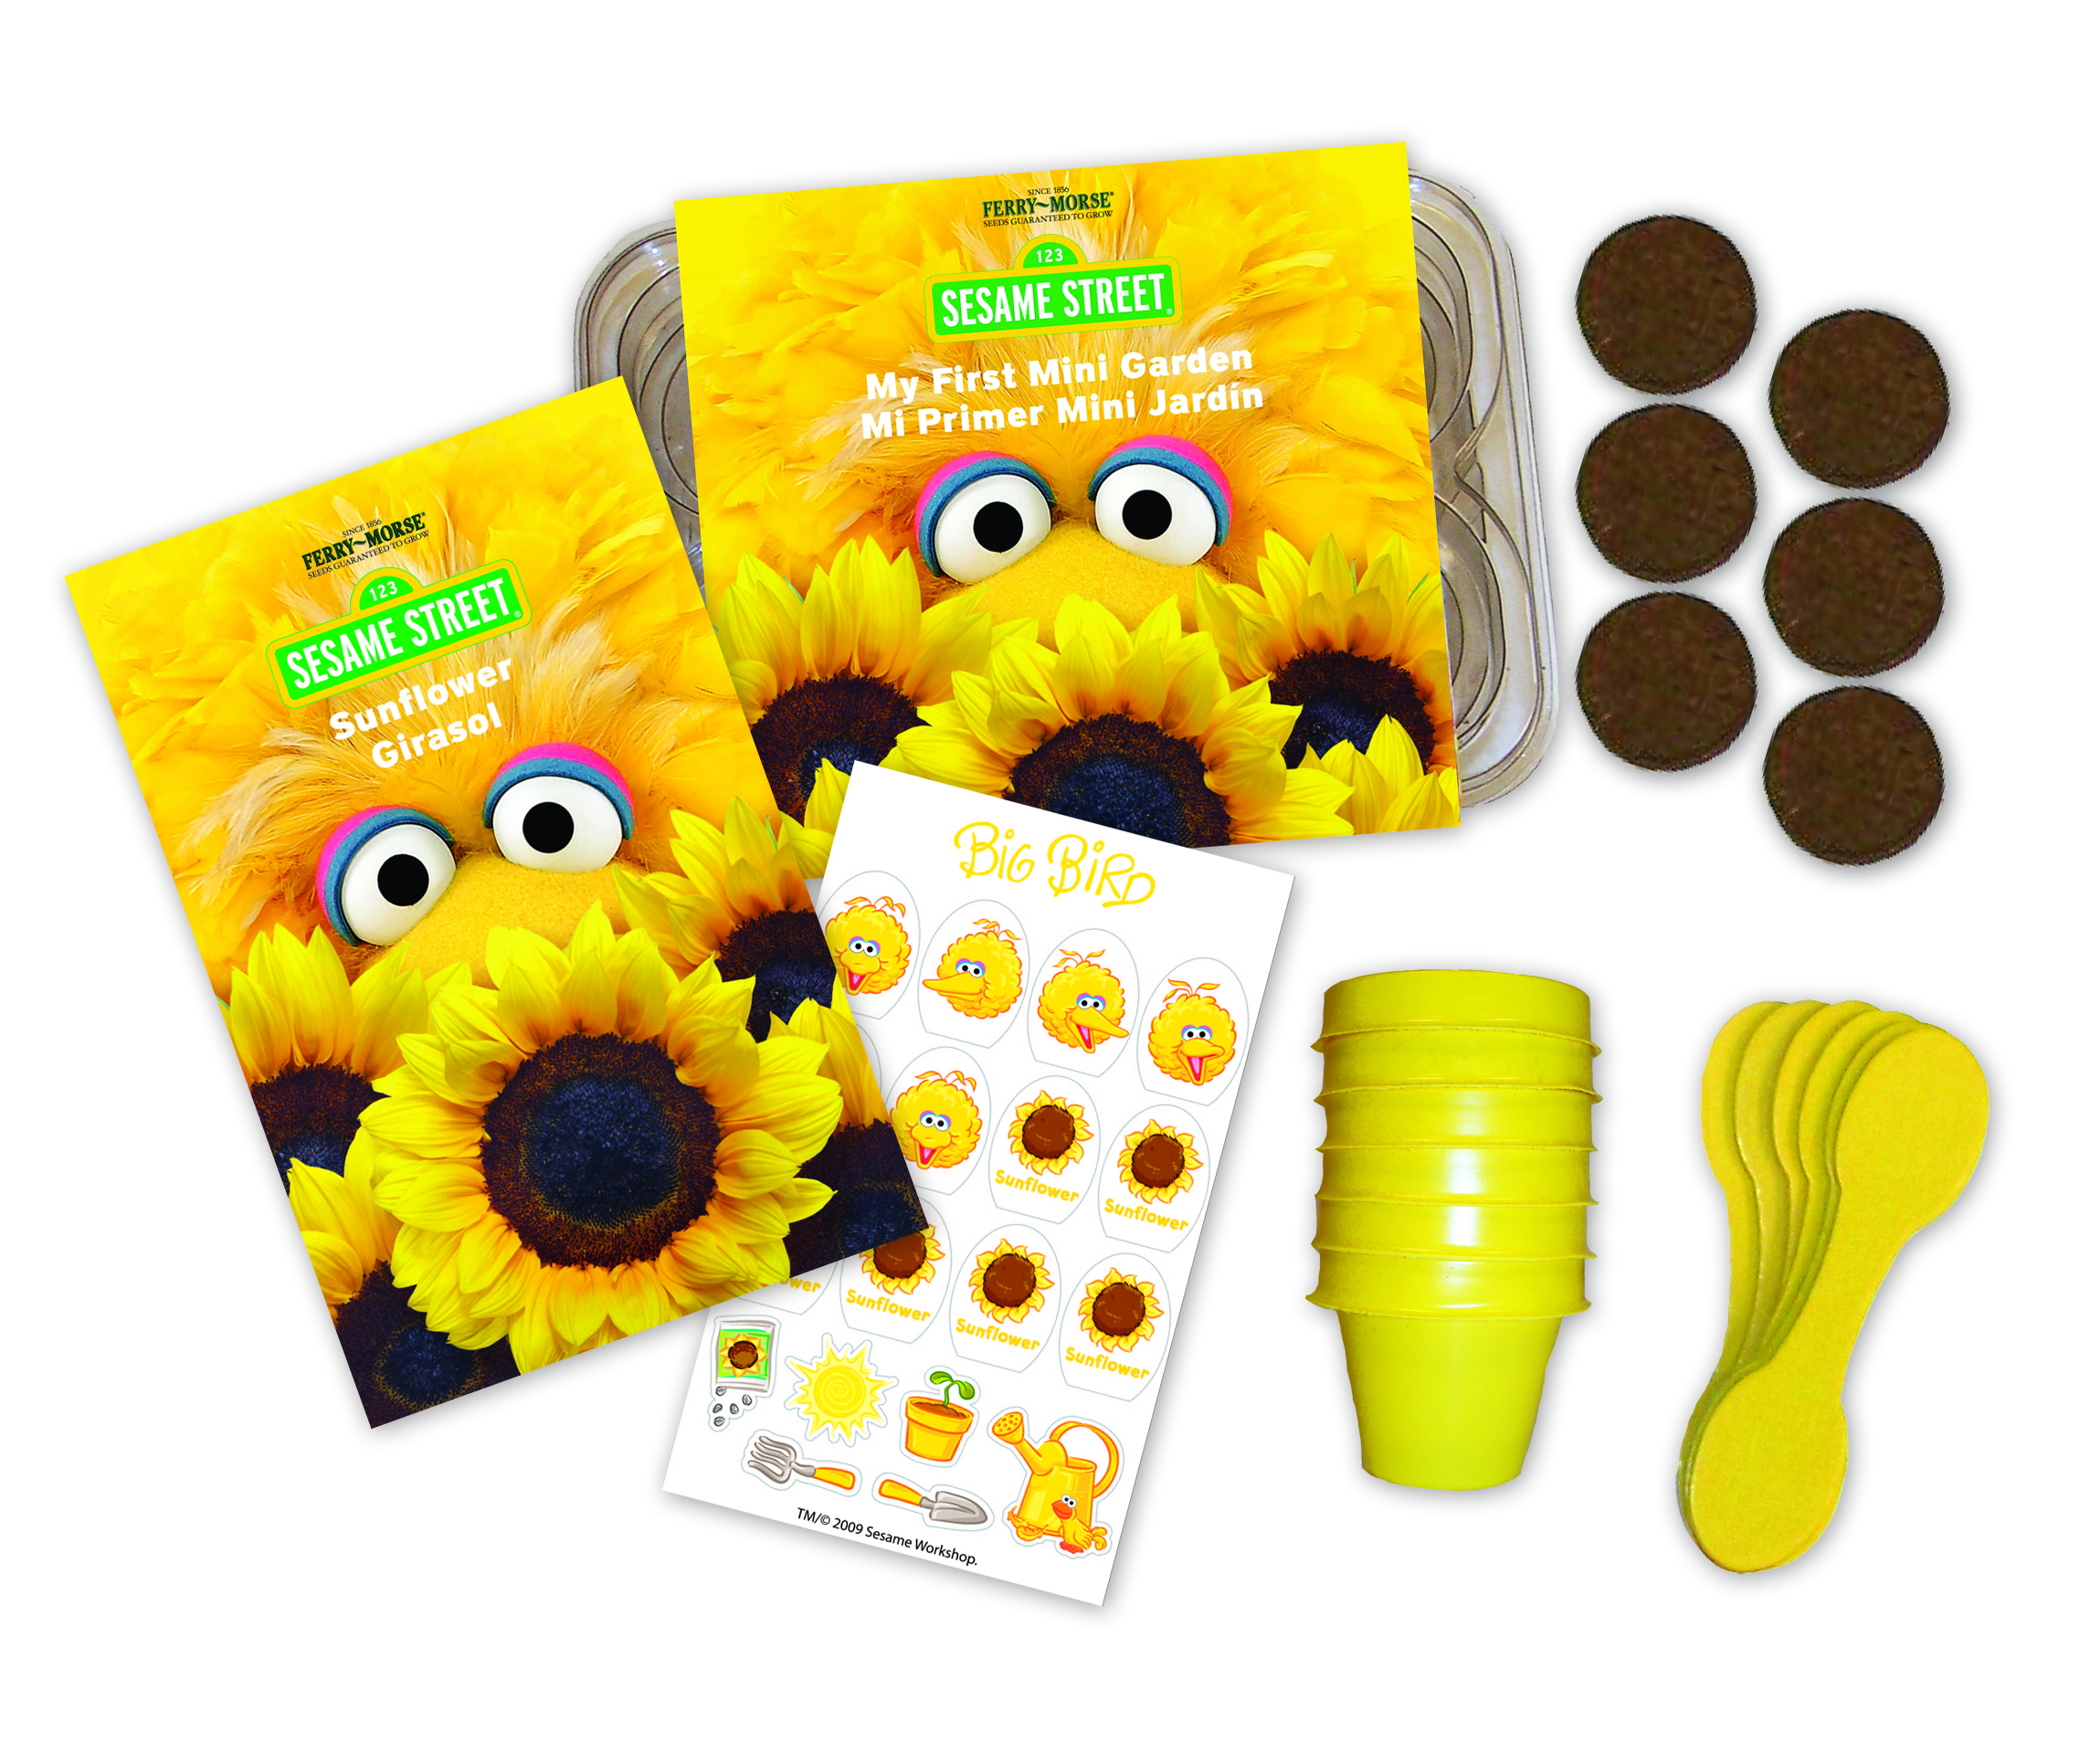 Sesame street introduces new gardening line the next kid for Gardening kit for toddlers